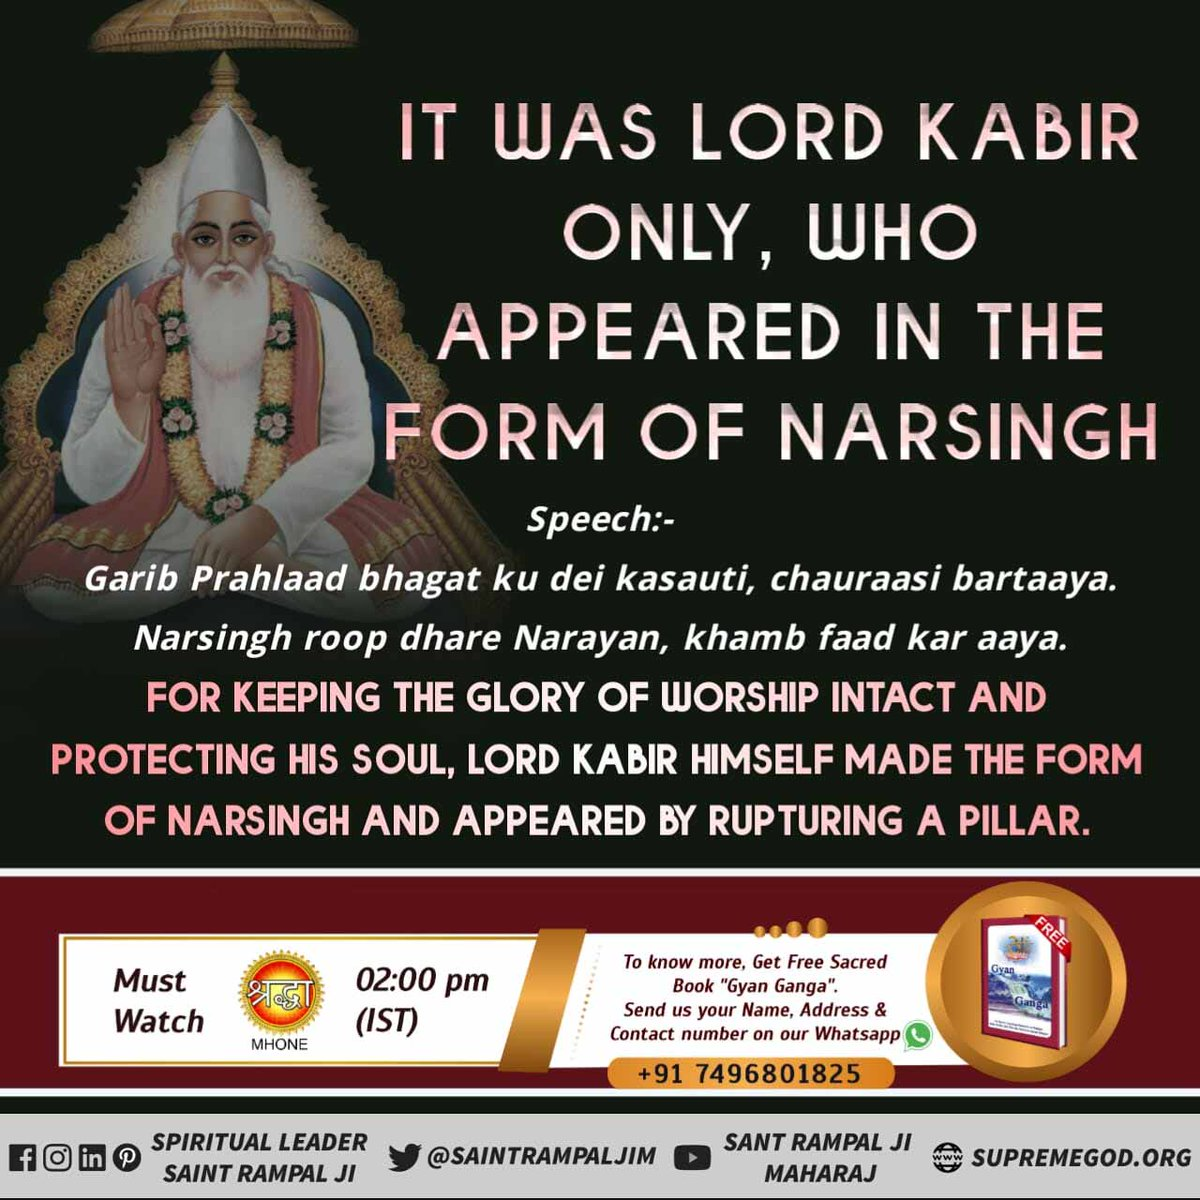 #MondayMotivation #GodMorningMonday The kind supreme god who is the real friend of a living beings and who in the form of the messanger brings and imparts his sound knowledge is himself kabir... @SaintRampalJiM Lord Kabir Ji #MondayMorning